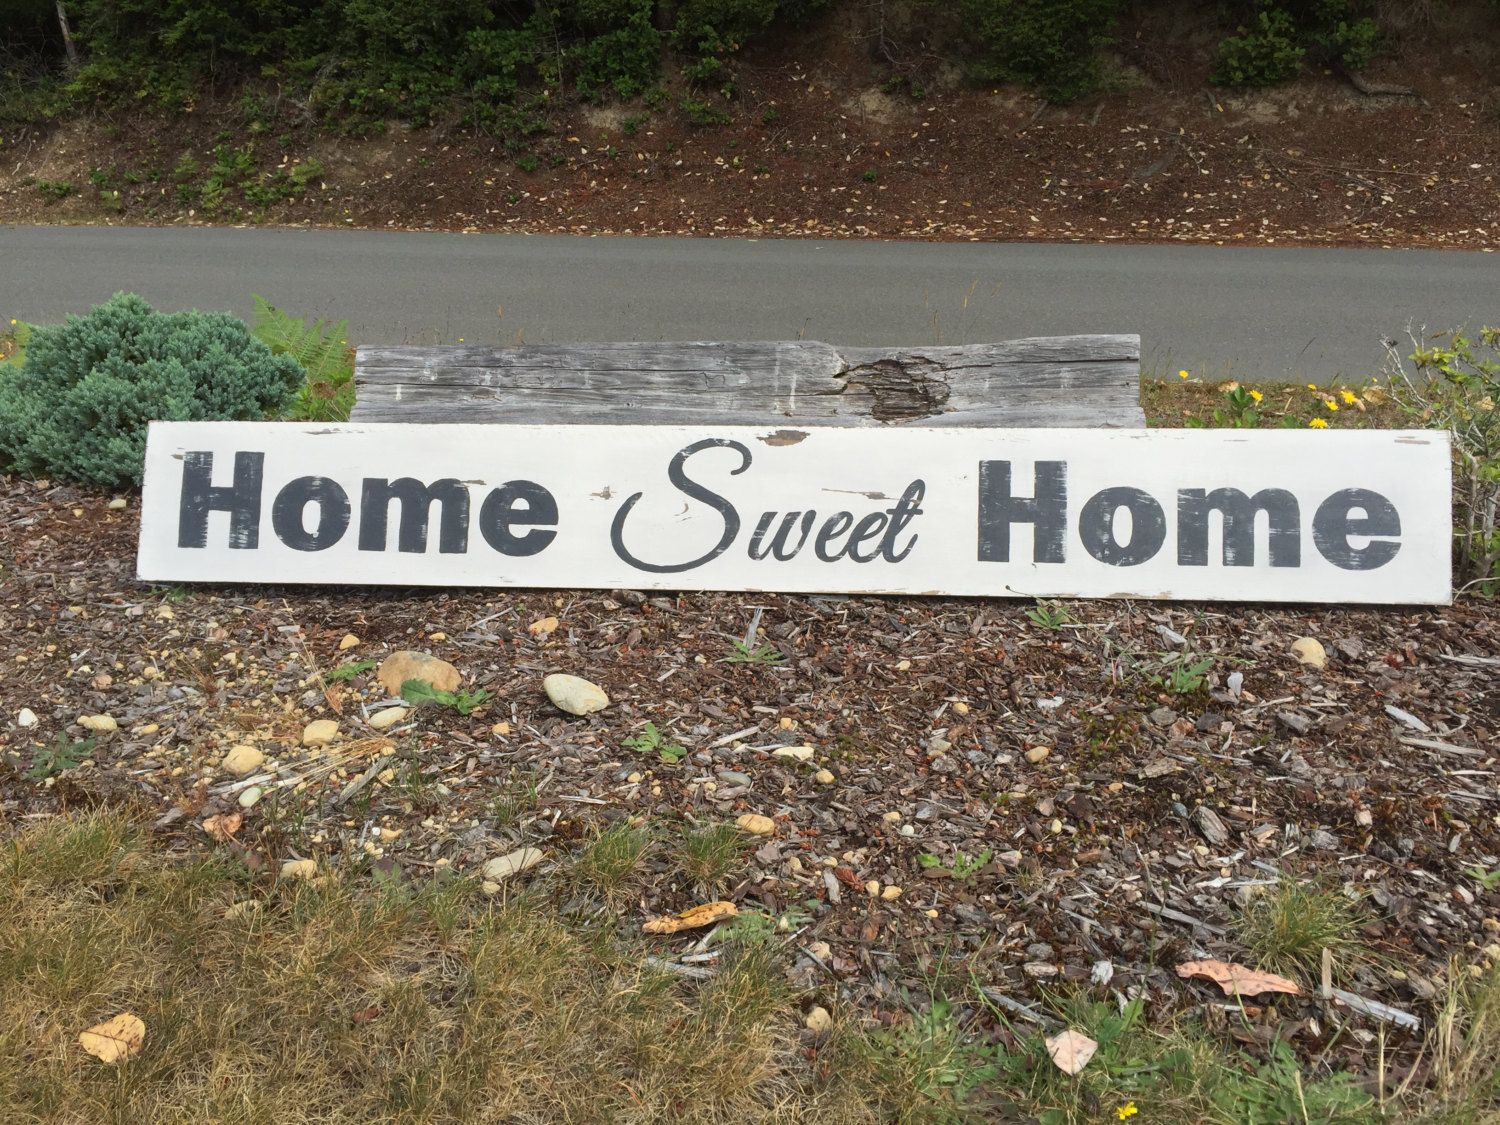 Home Sweet Home Sign - Farmhouse style Sign - Primitive Sign ... on stylish eve home designs, retro home designs, affordable home designs, 2015 home designs, complex home designs, antique home designs, two story home designs, popular home designs, home decor designs, exotic home designs, wild home designs, contemporary home designs, kitchen designs, native home designs, unusual home designs, zero home designs, nigerian home designs, primative designs, wood home designs, ancient home designs,